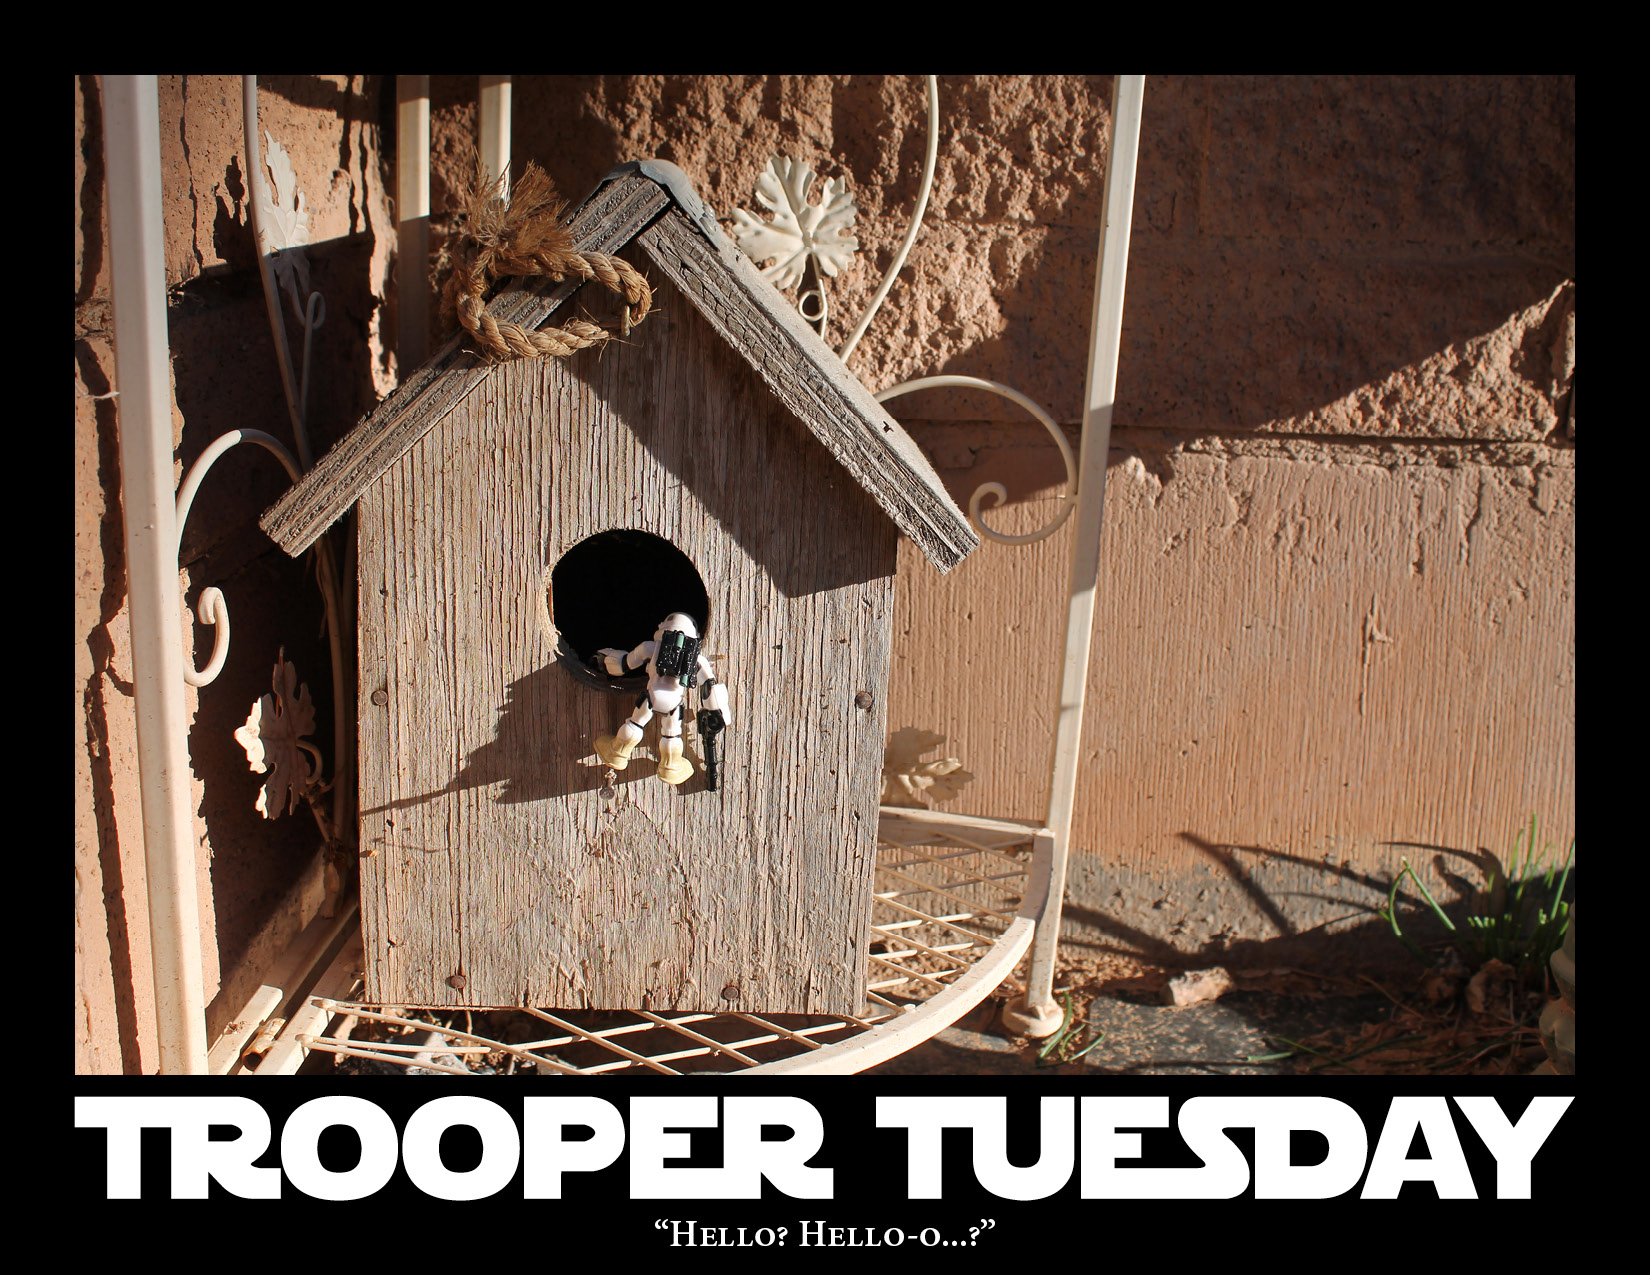 A Sandtrooper looks into a birdhouse.